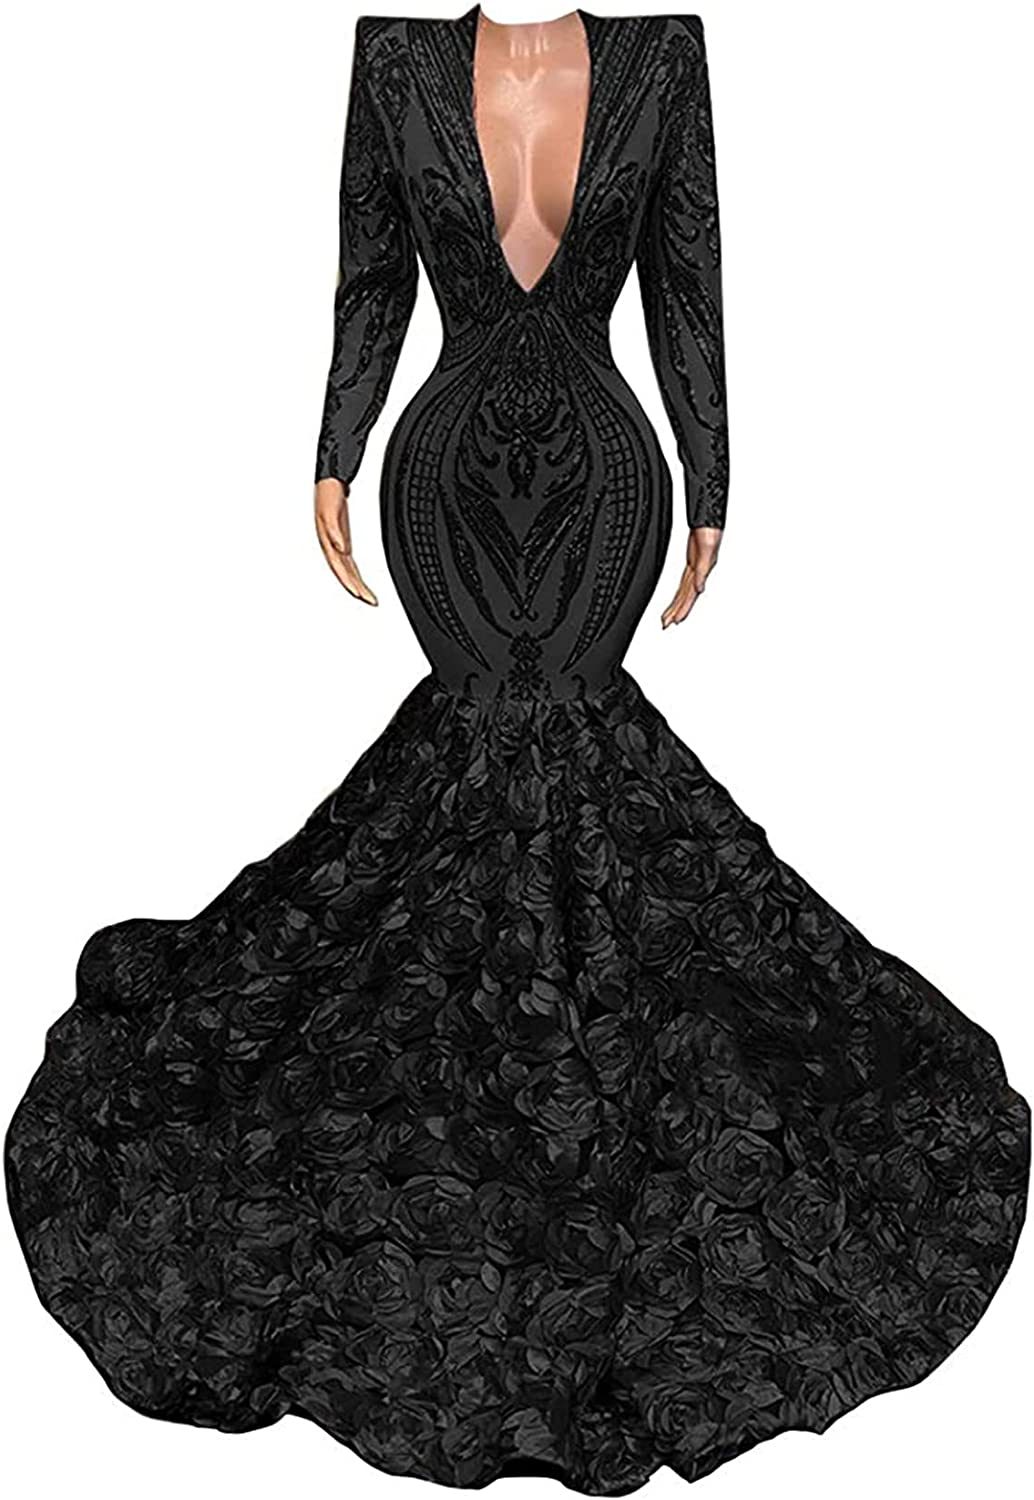 Women's V-Neck Mermaid Prom Dresses with Long Sleeves Lace Sequin Pageant Formal Ball Gown Party Dress